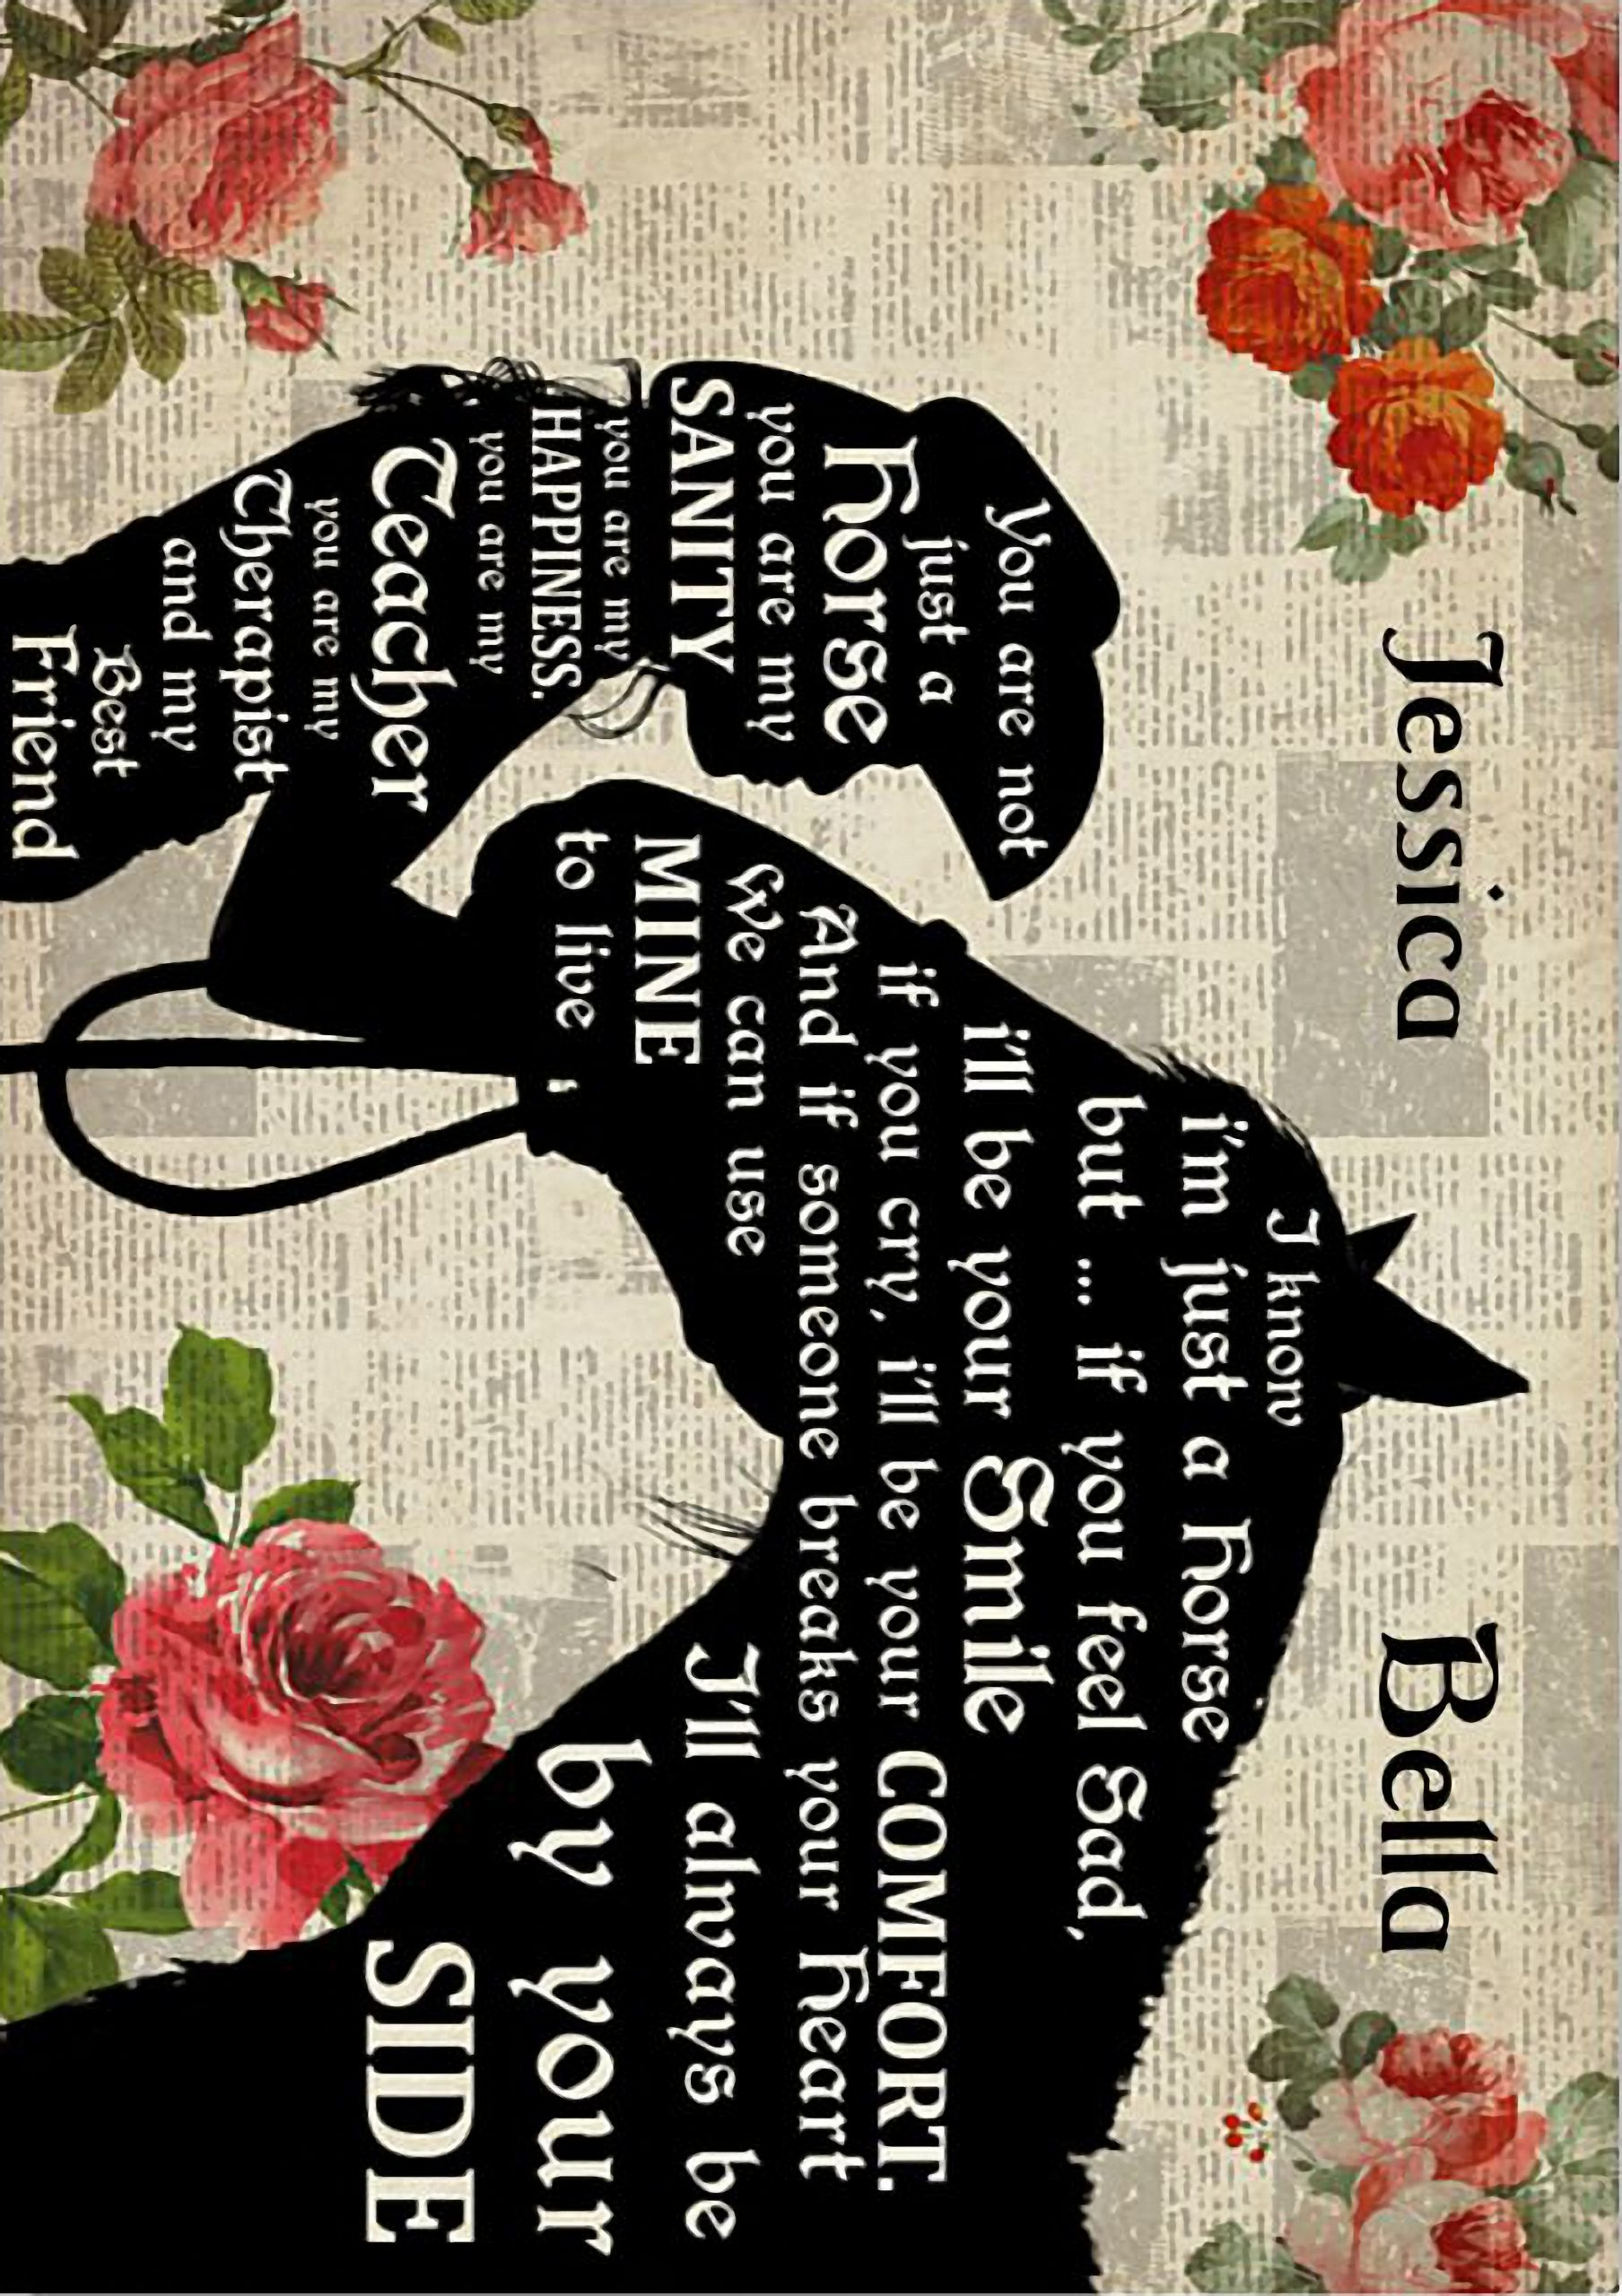 You are not just a horse you are my sanity personalized poster